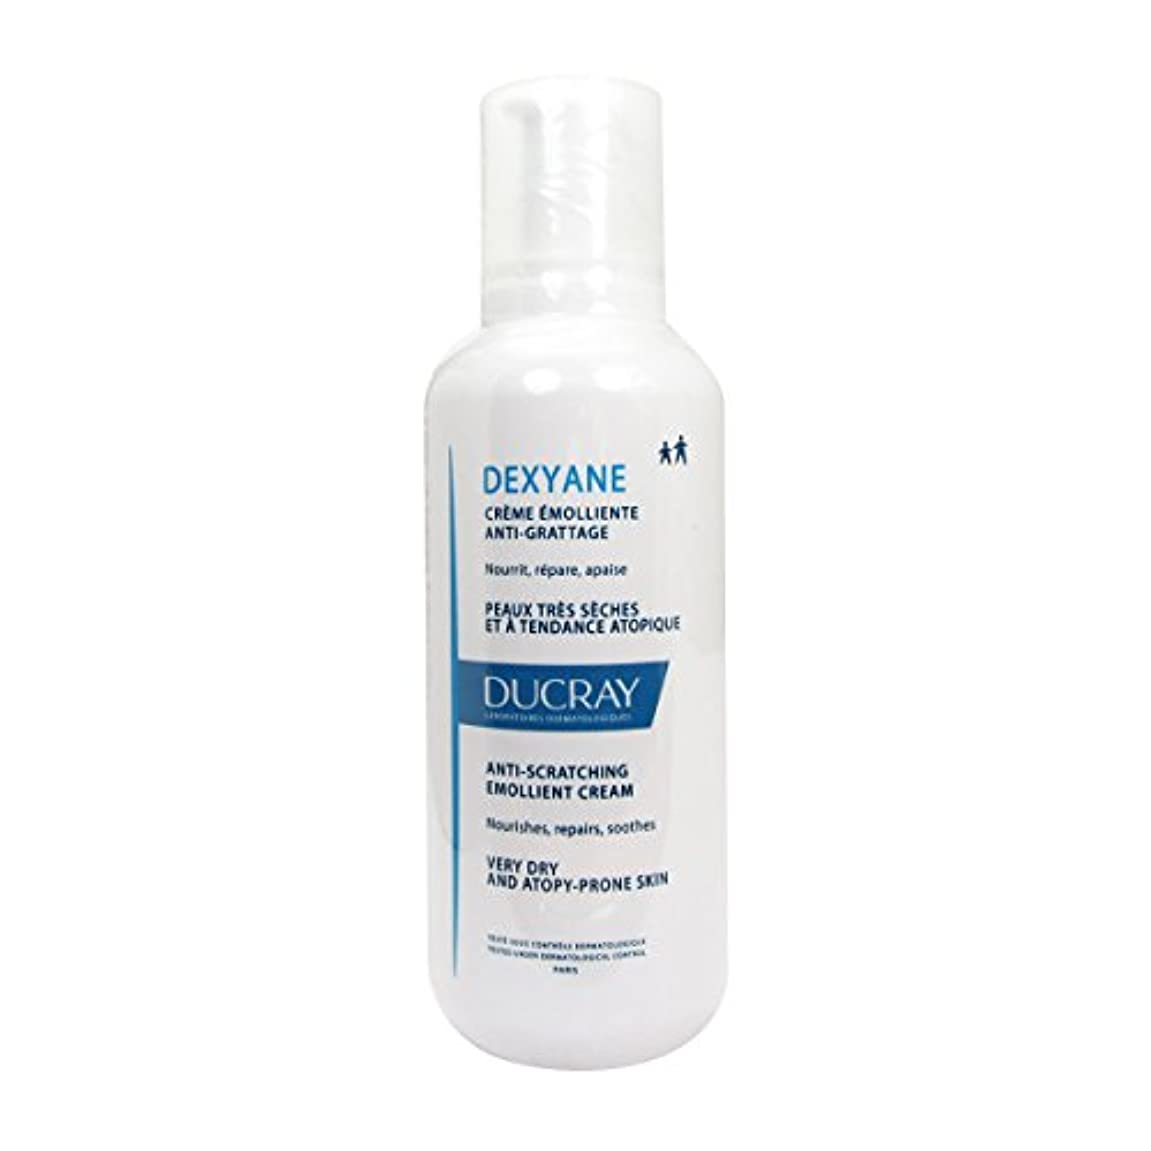 磨かれた反動愚かDucray Dexyane Anti-scratching Emollient Cream 400ml [並行輸入品]